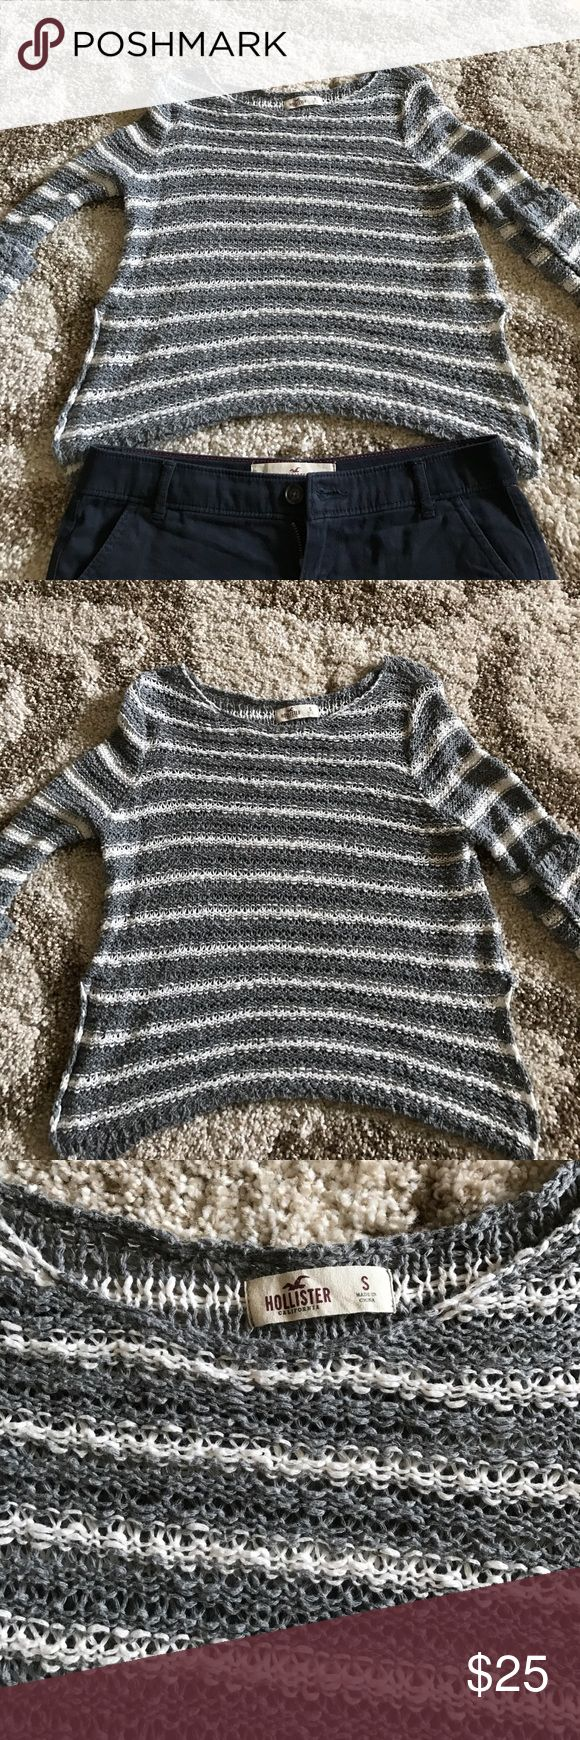 Hollister Open Stitch Sweater This piece is SO SOFT! Perfect for summer to wear over a tank, bandeau or bikini top.  Top is in great condition; size is small.  Grey and white stripes are very neutral! Pair with a pair of Chino shorts or Denim Shorties! Hollister Sweaters